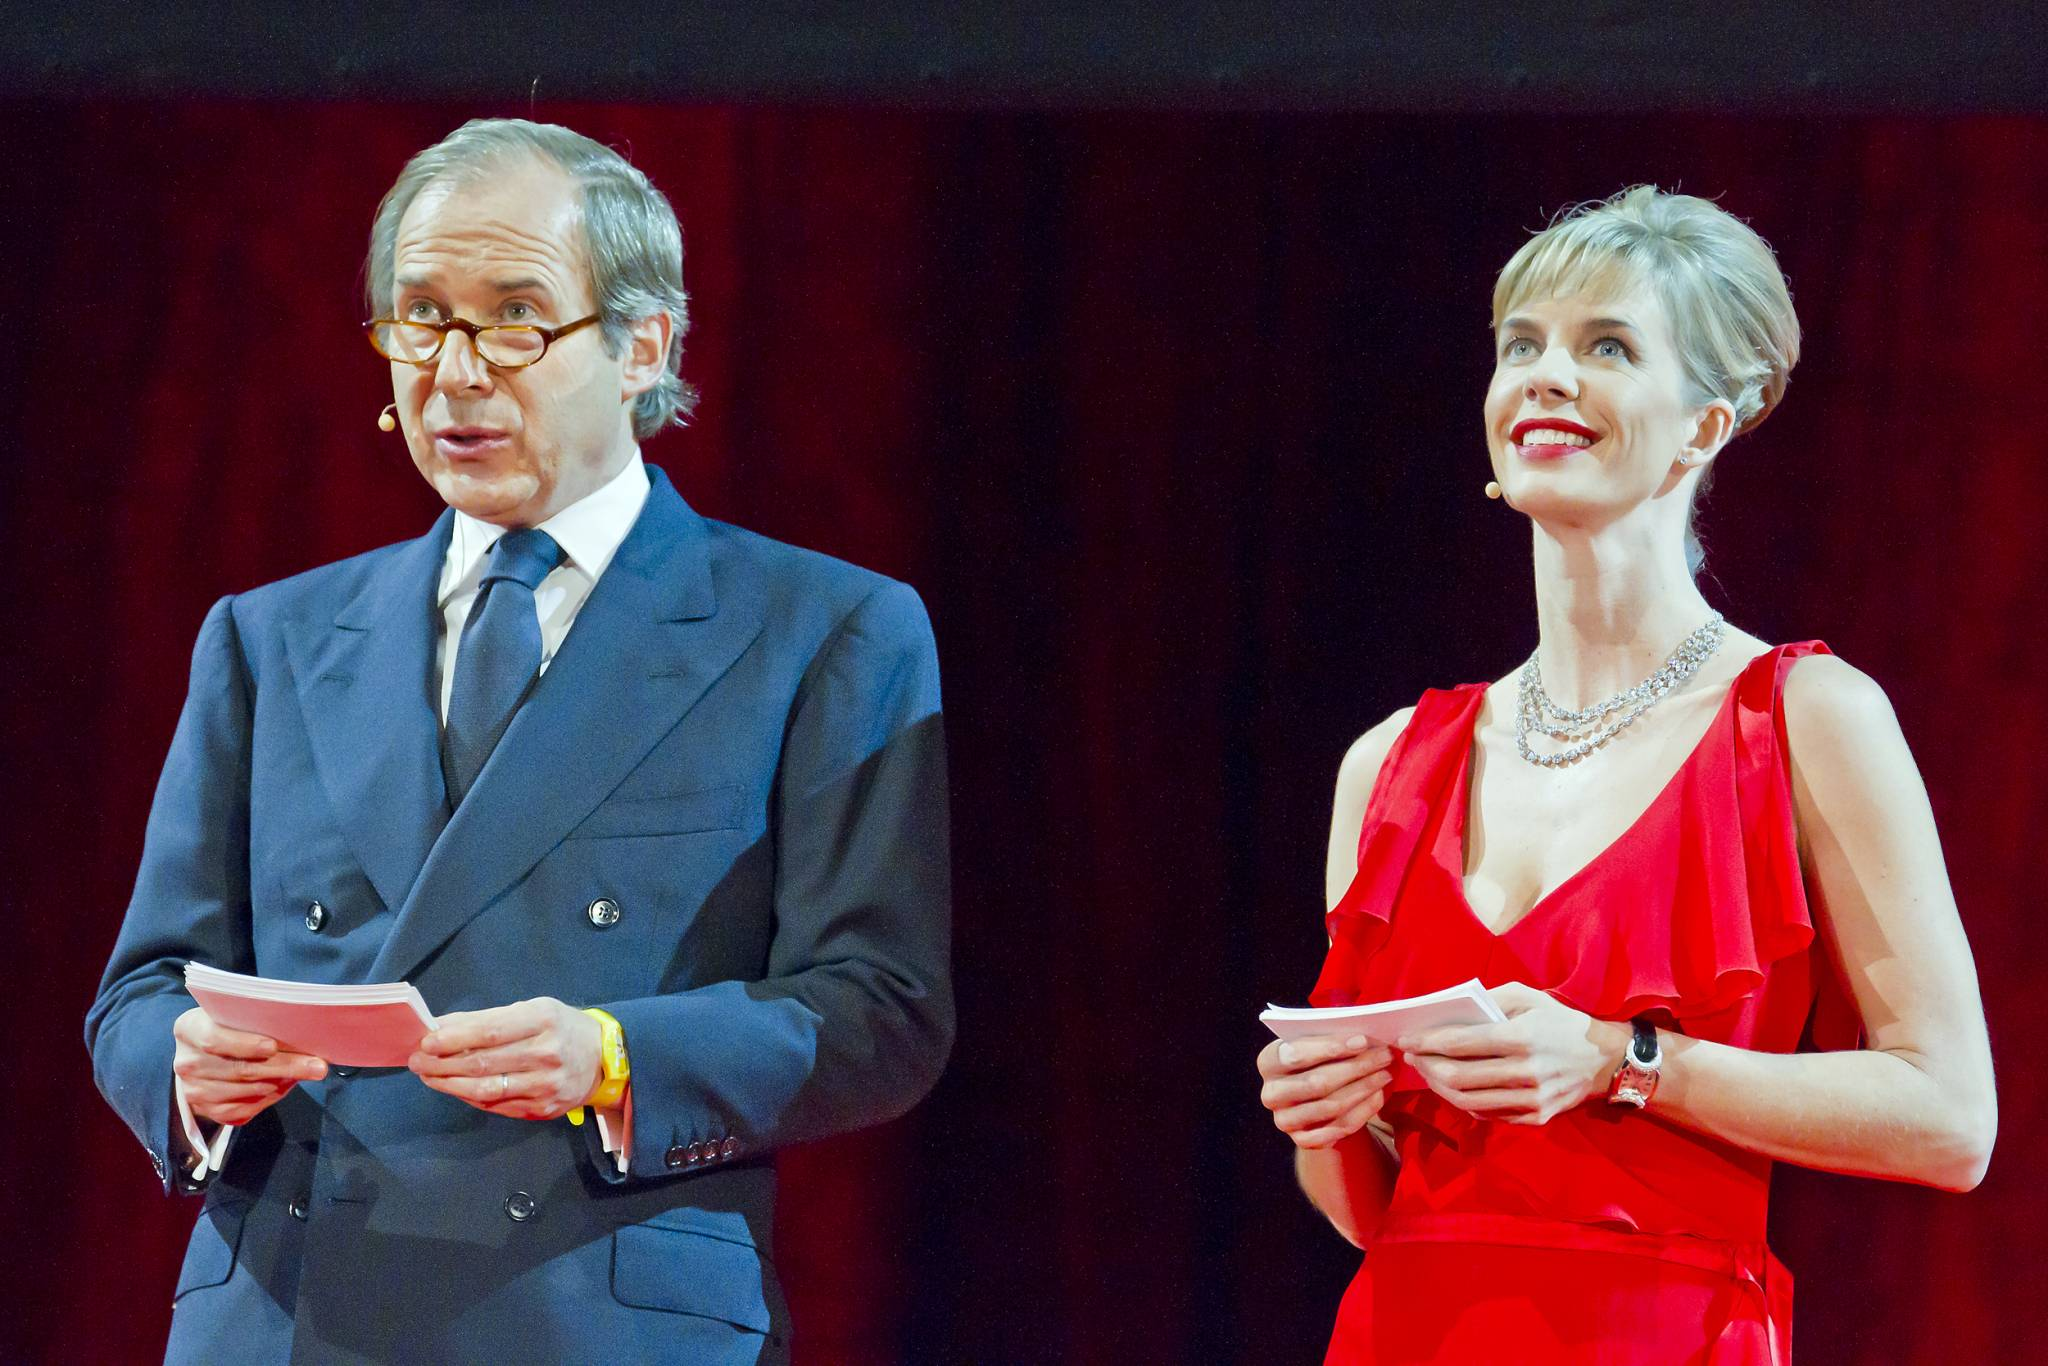 Simon de Pury and Natacha Wenger co-host the 2011 Awards ceremony